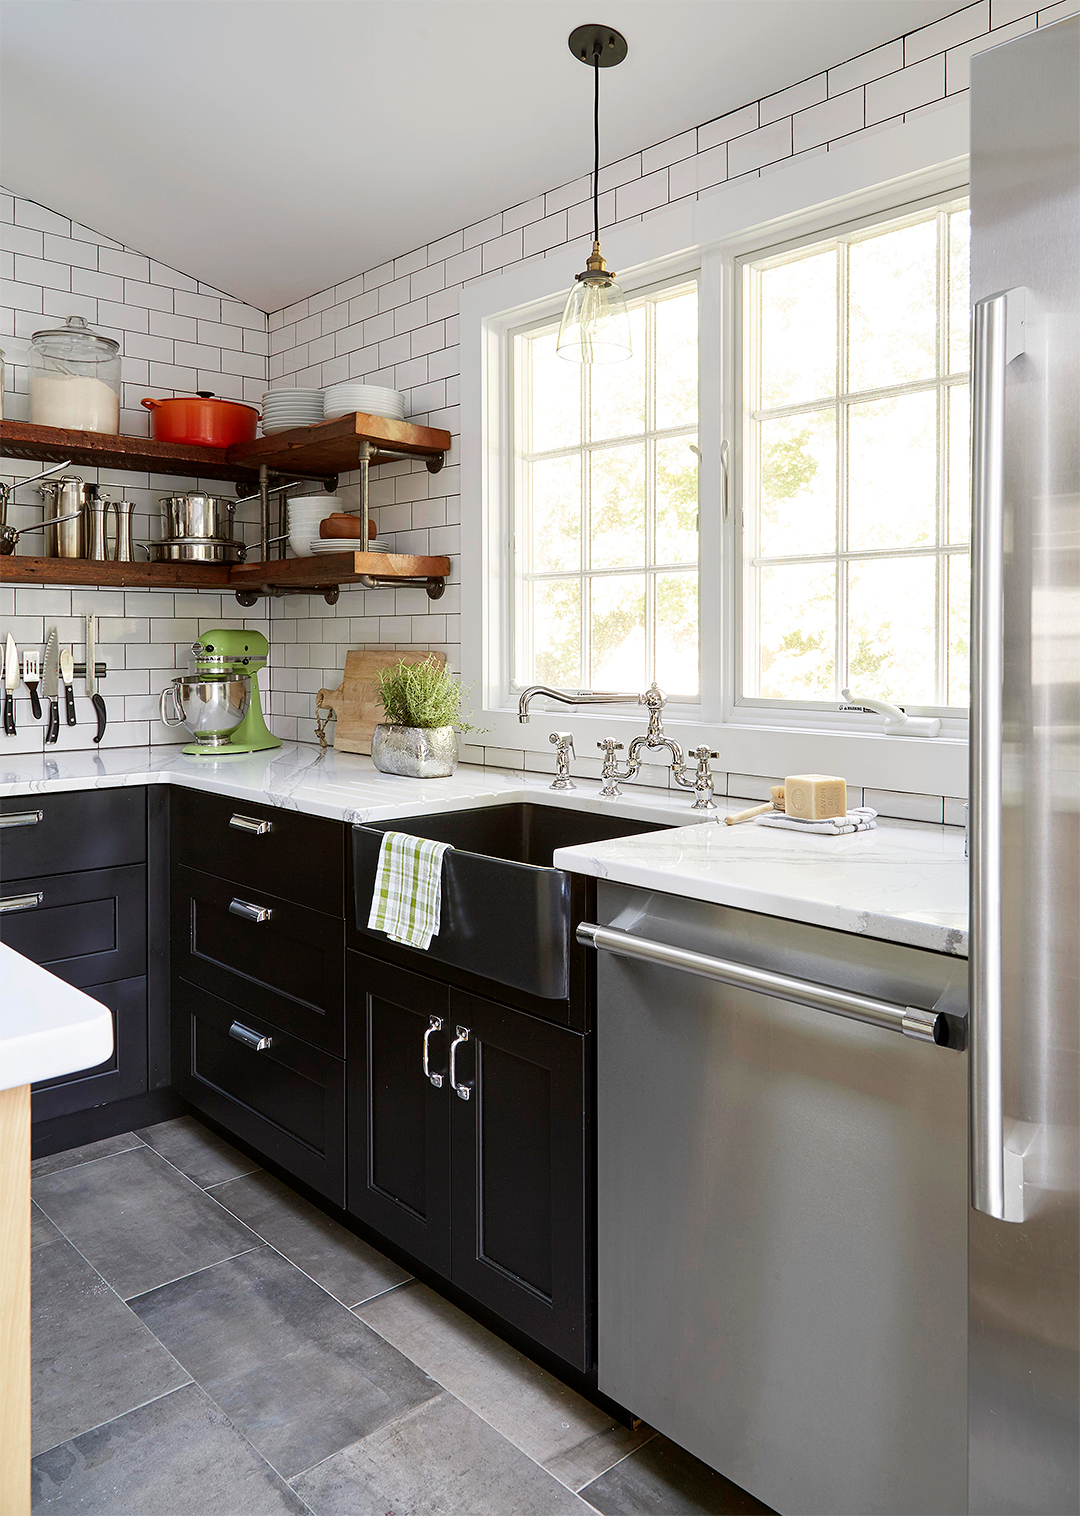 black and white industrial kitchen with apron sink